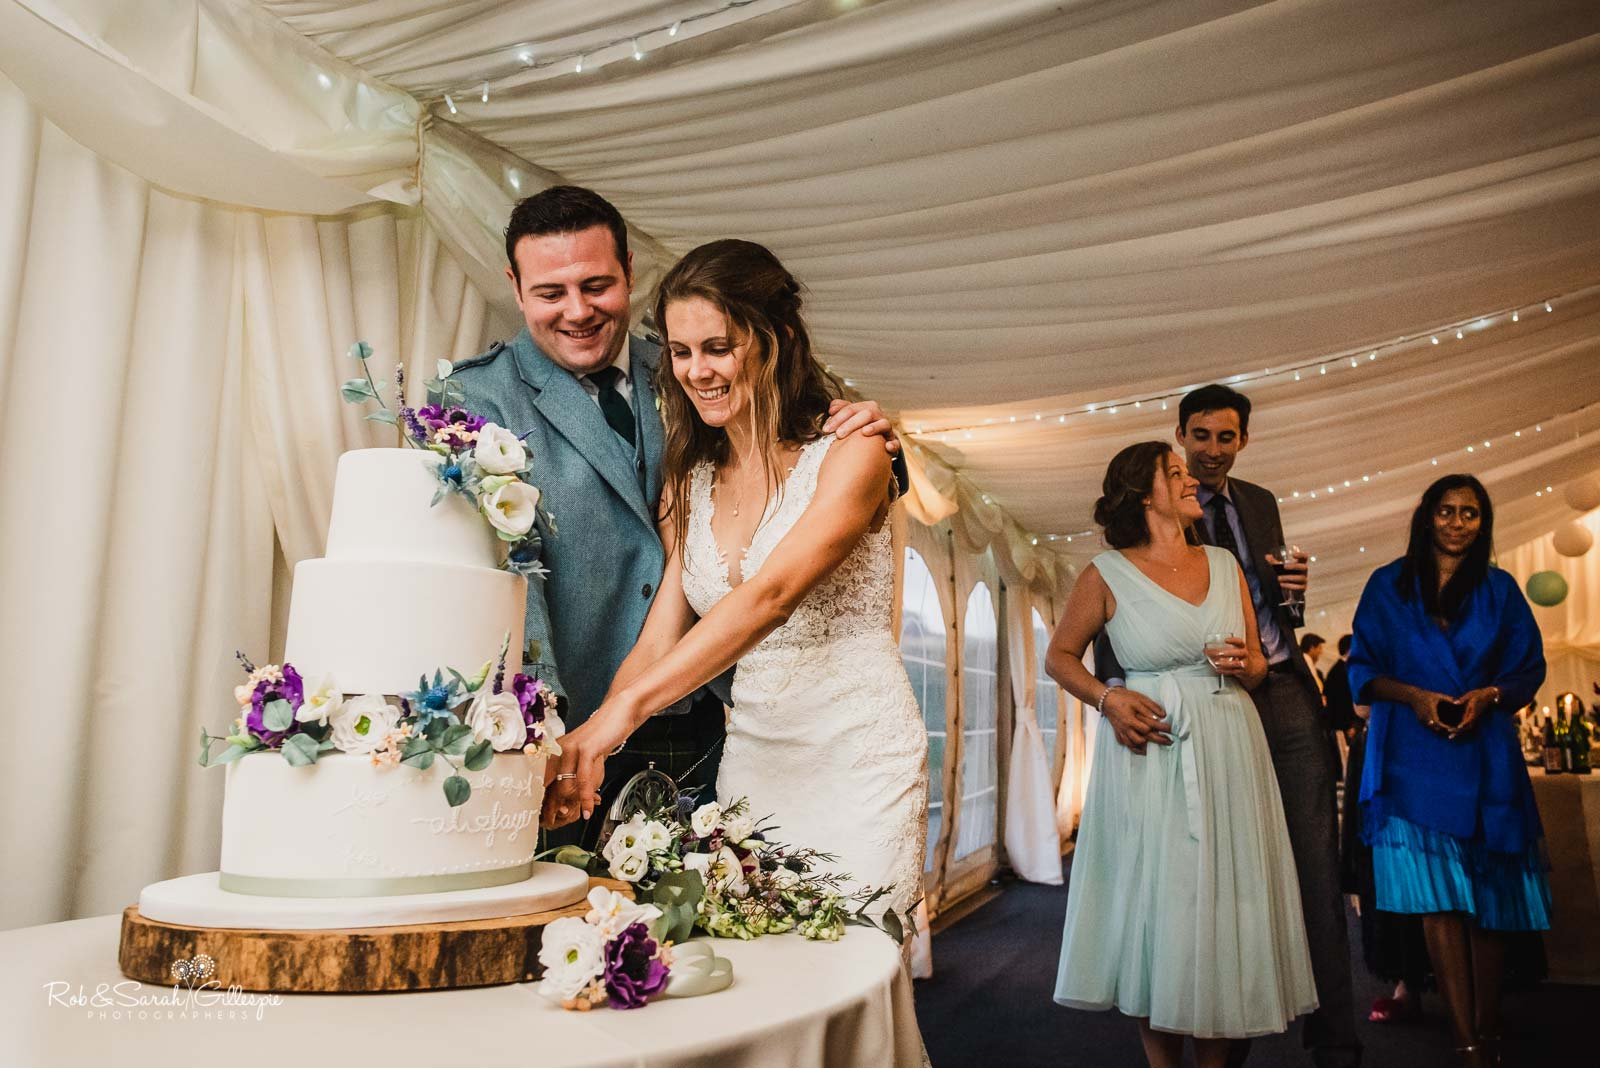 Bride and groom cut wedding cake at Wethele Manor